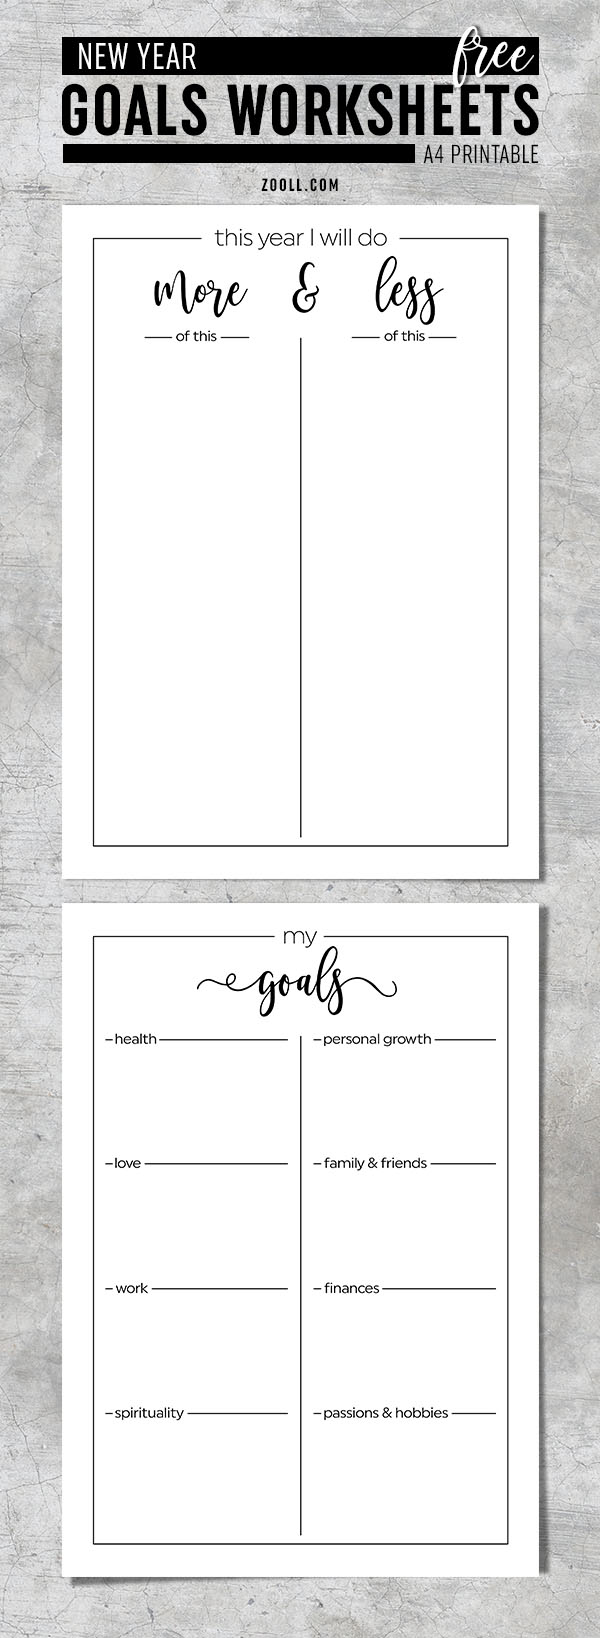 Printables: New Year Goals Worksheets